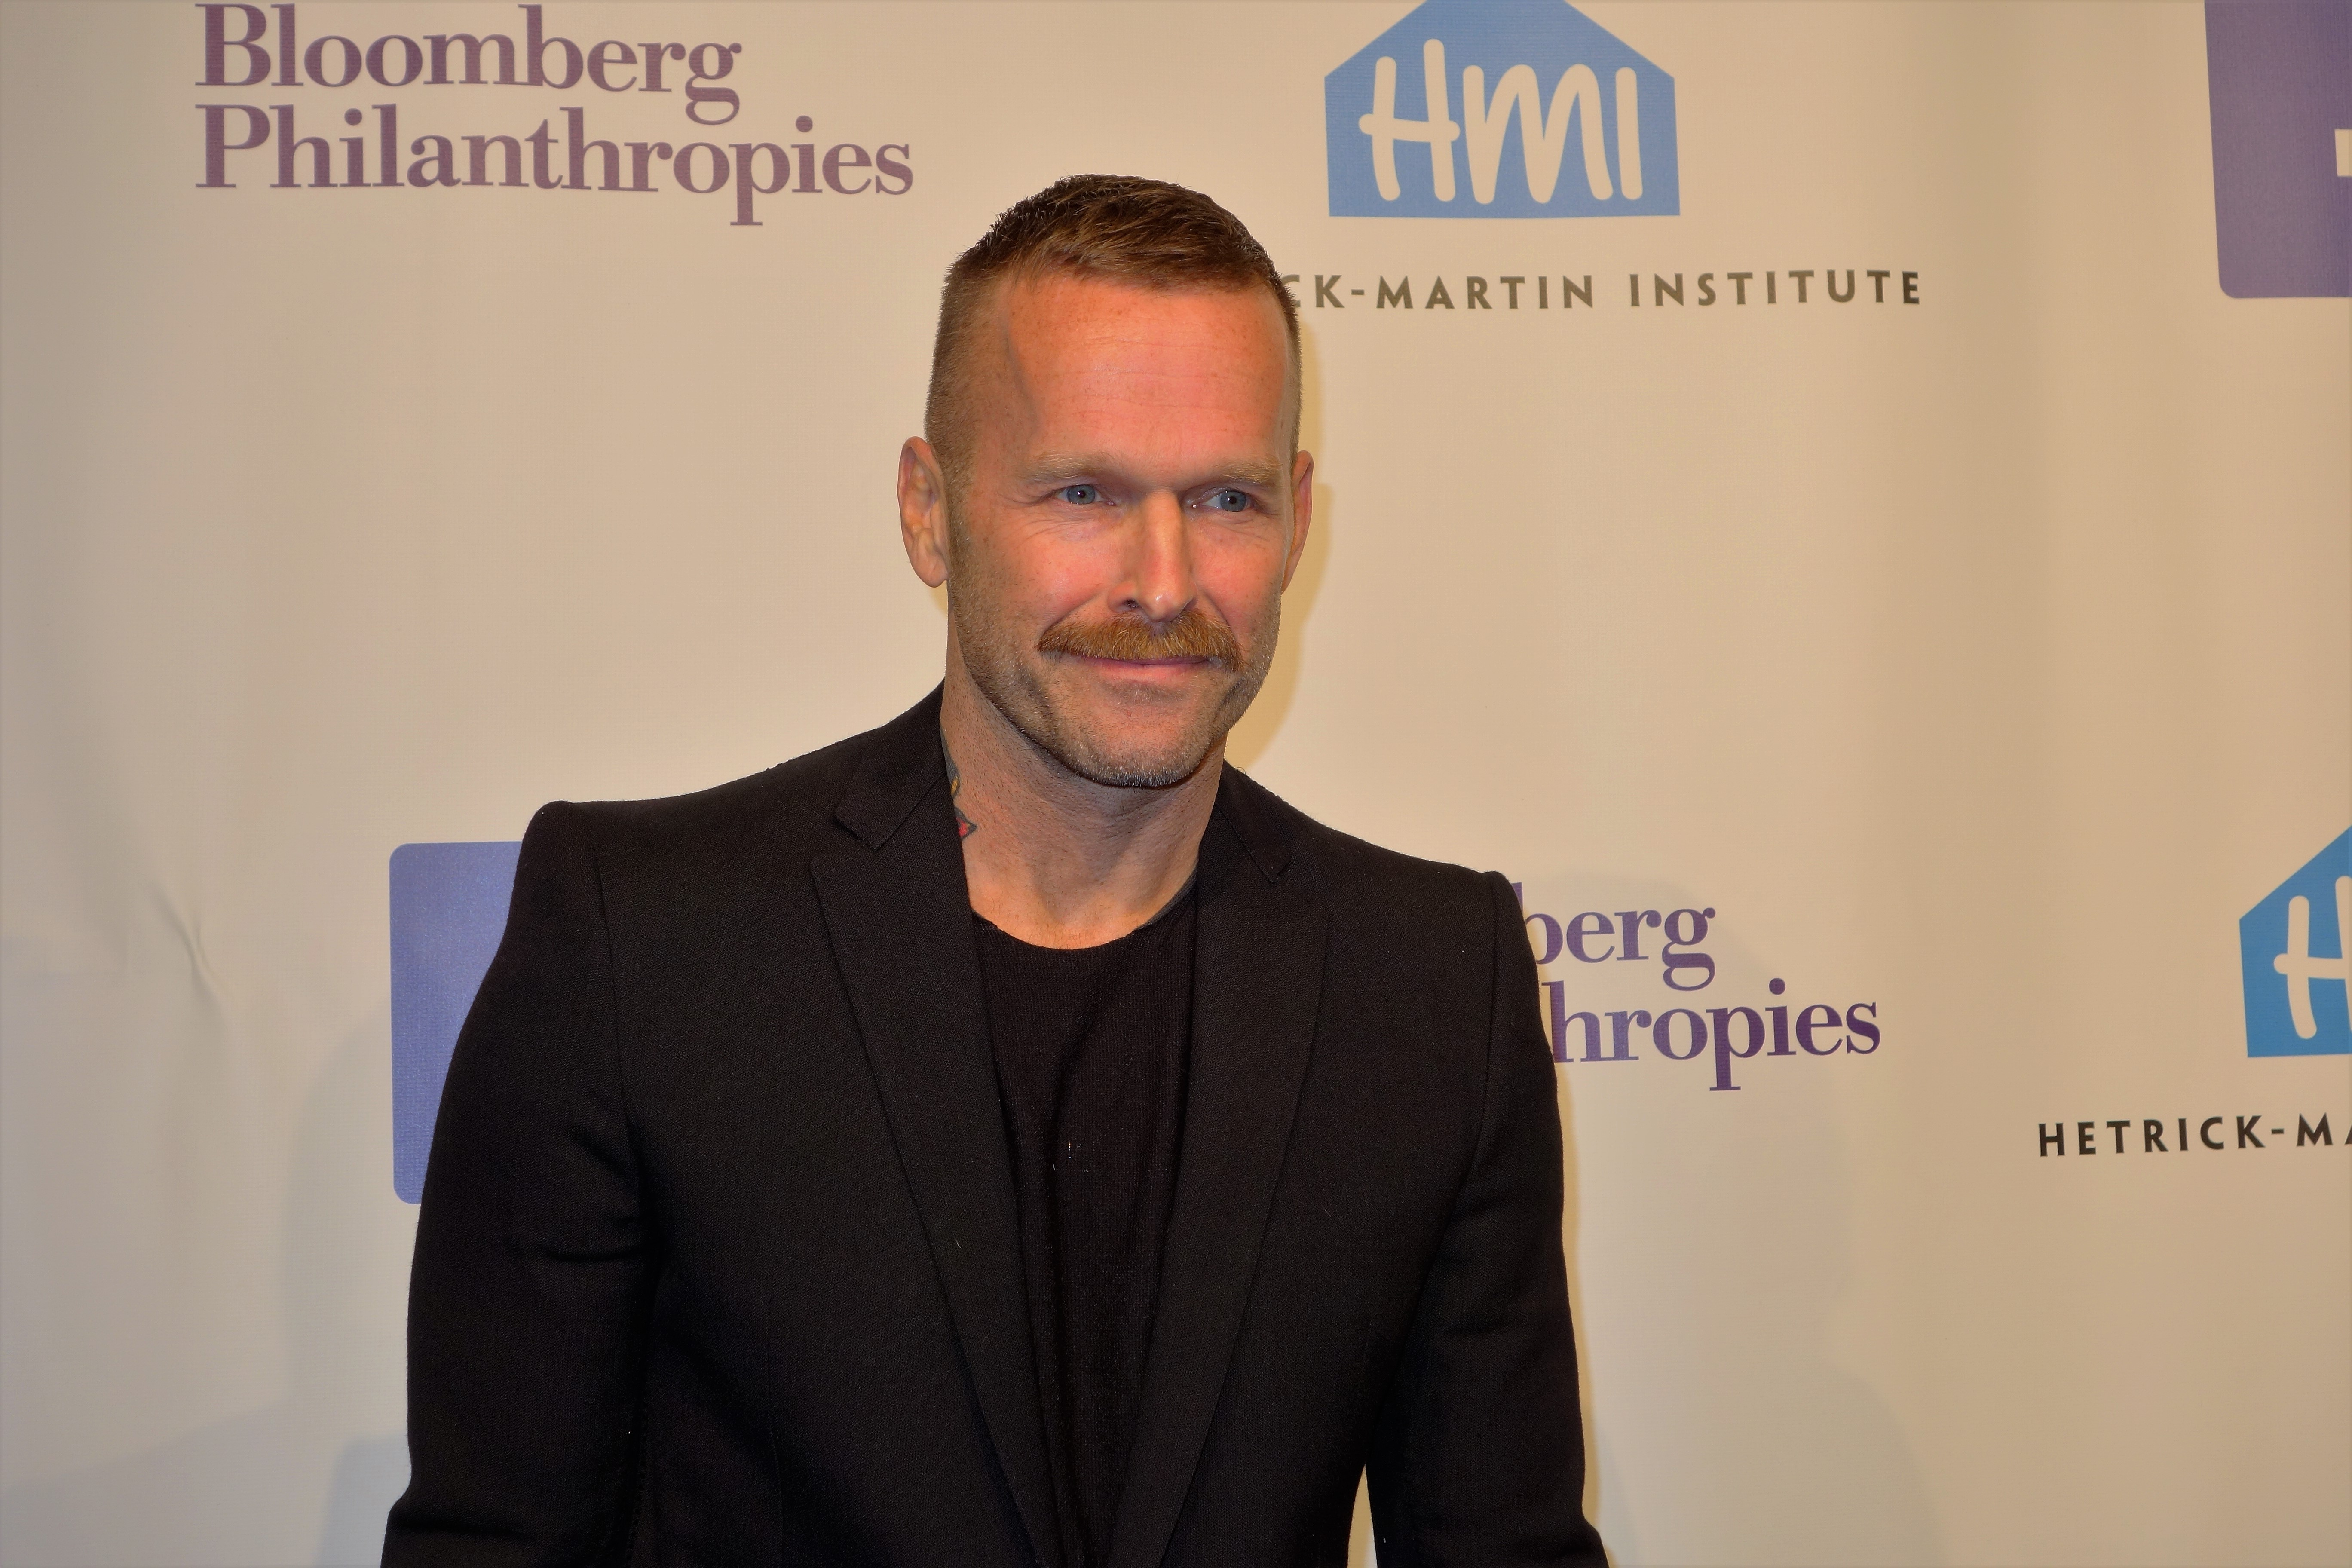 Bob Harper Host, The Bigest Loser and One of the Emery Award Hosts